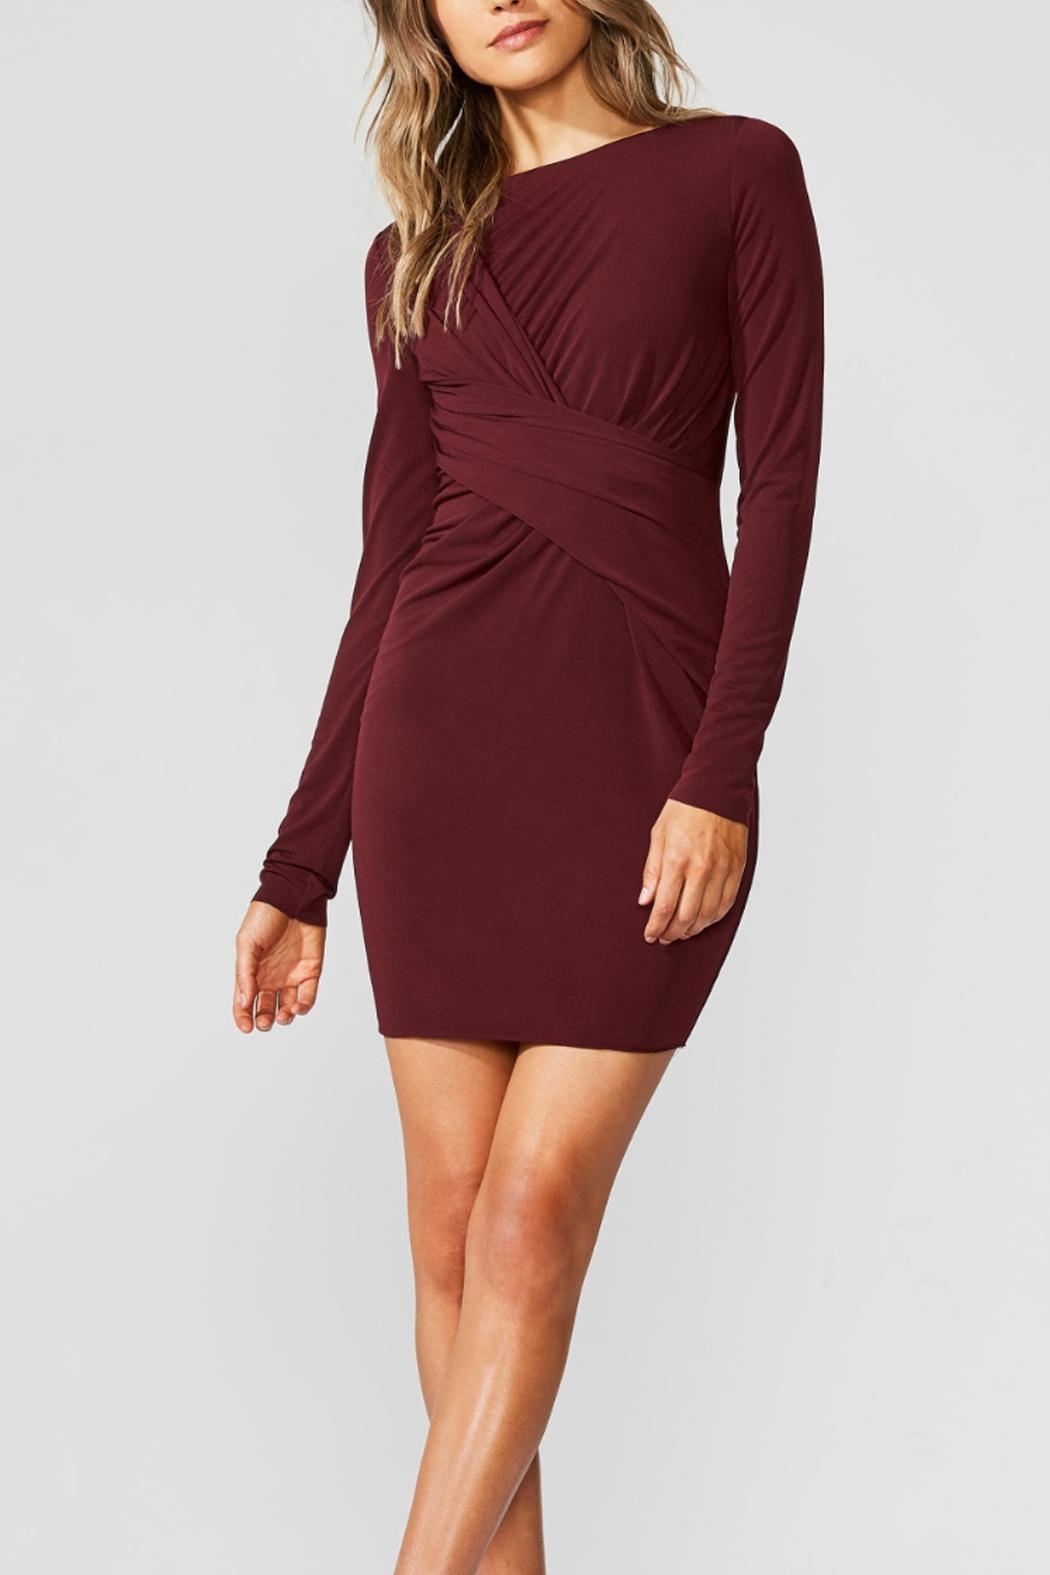 Bailey 44 Red Twisted Dress - Main Image